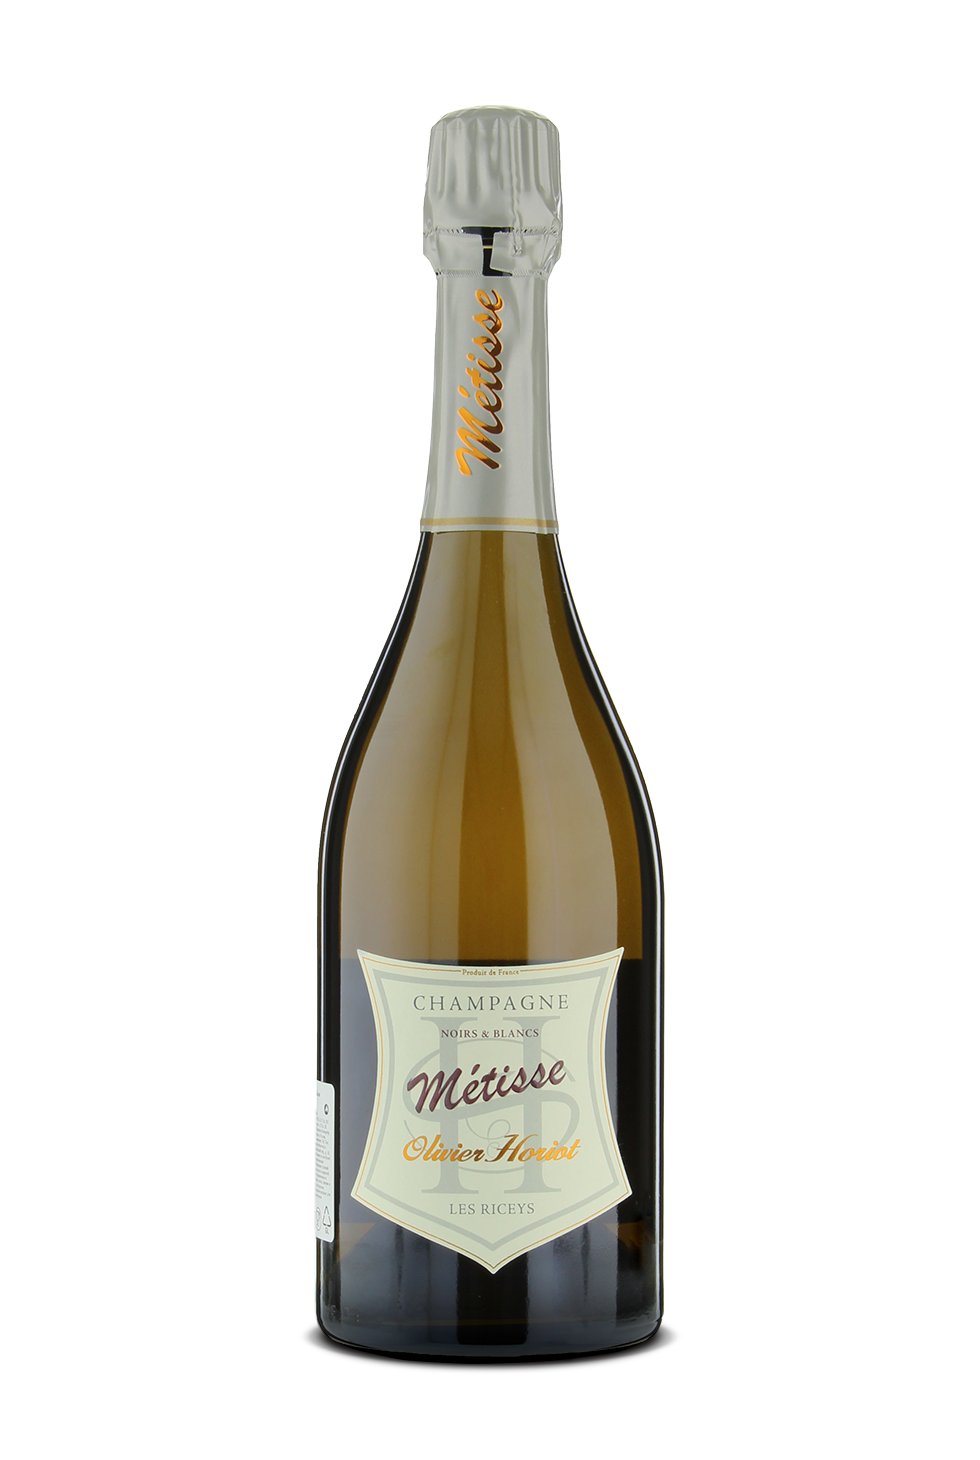 Olivier Horiot Metisse Extra Brut Noirs & Blancs Champagne AOC